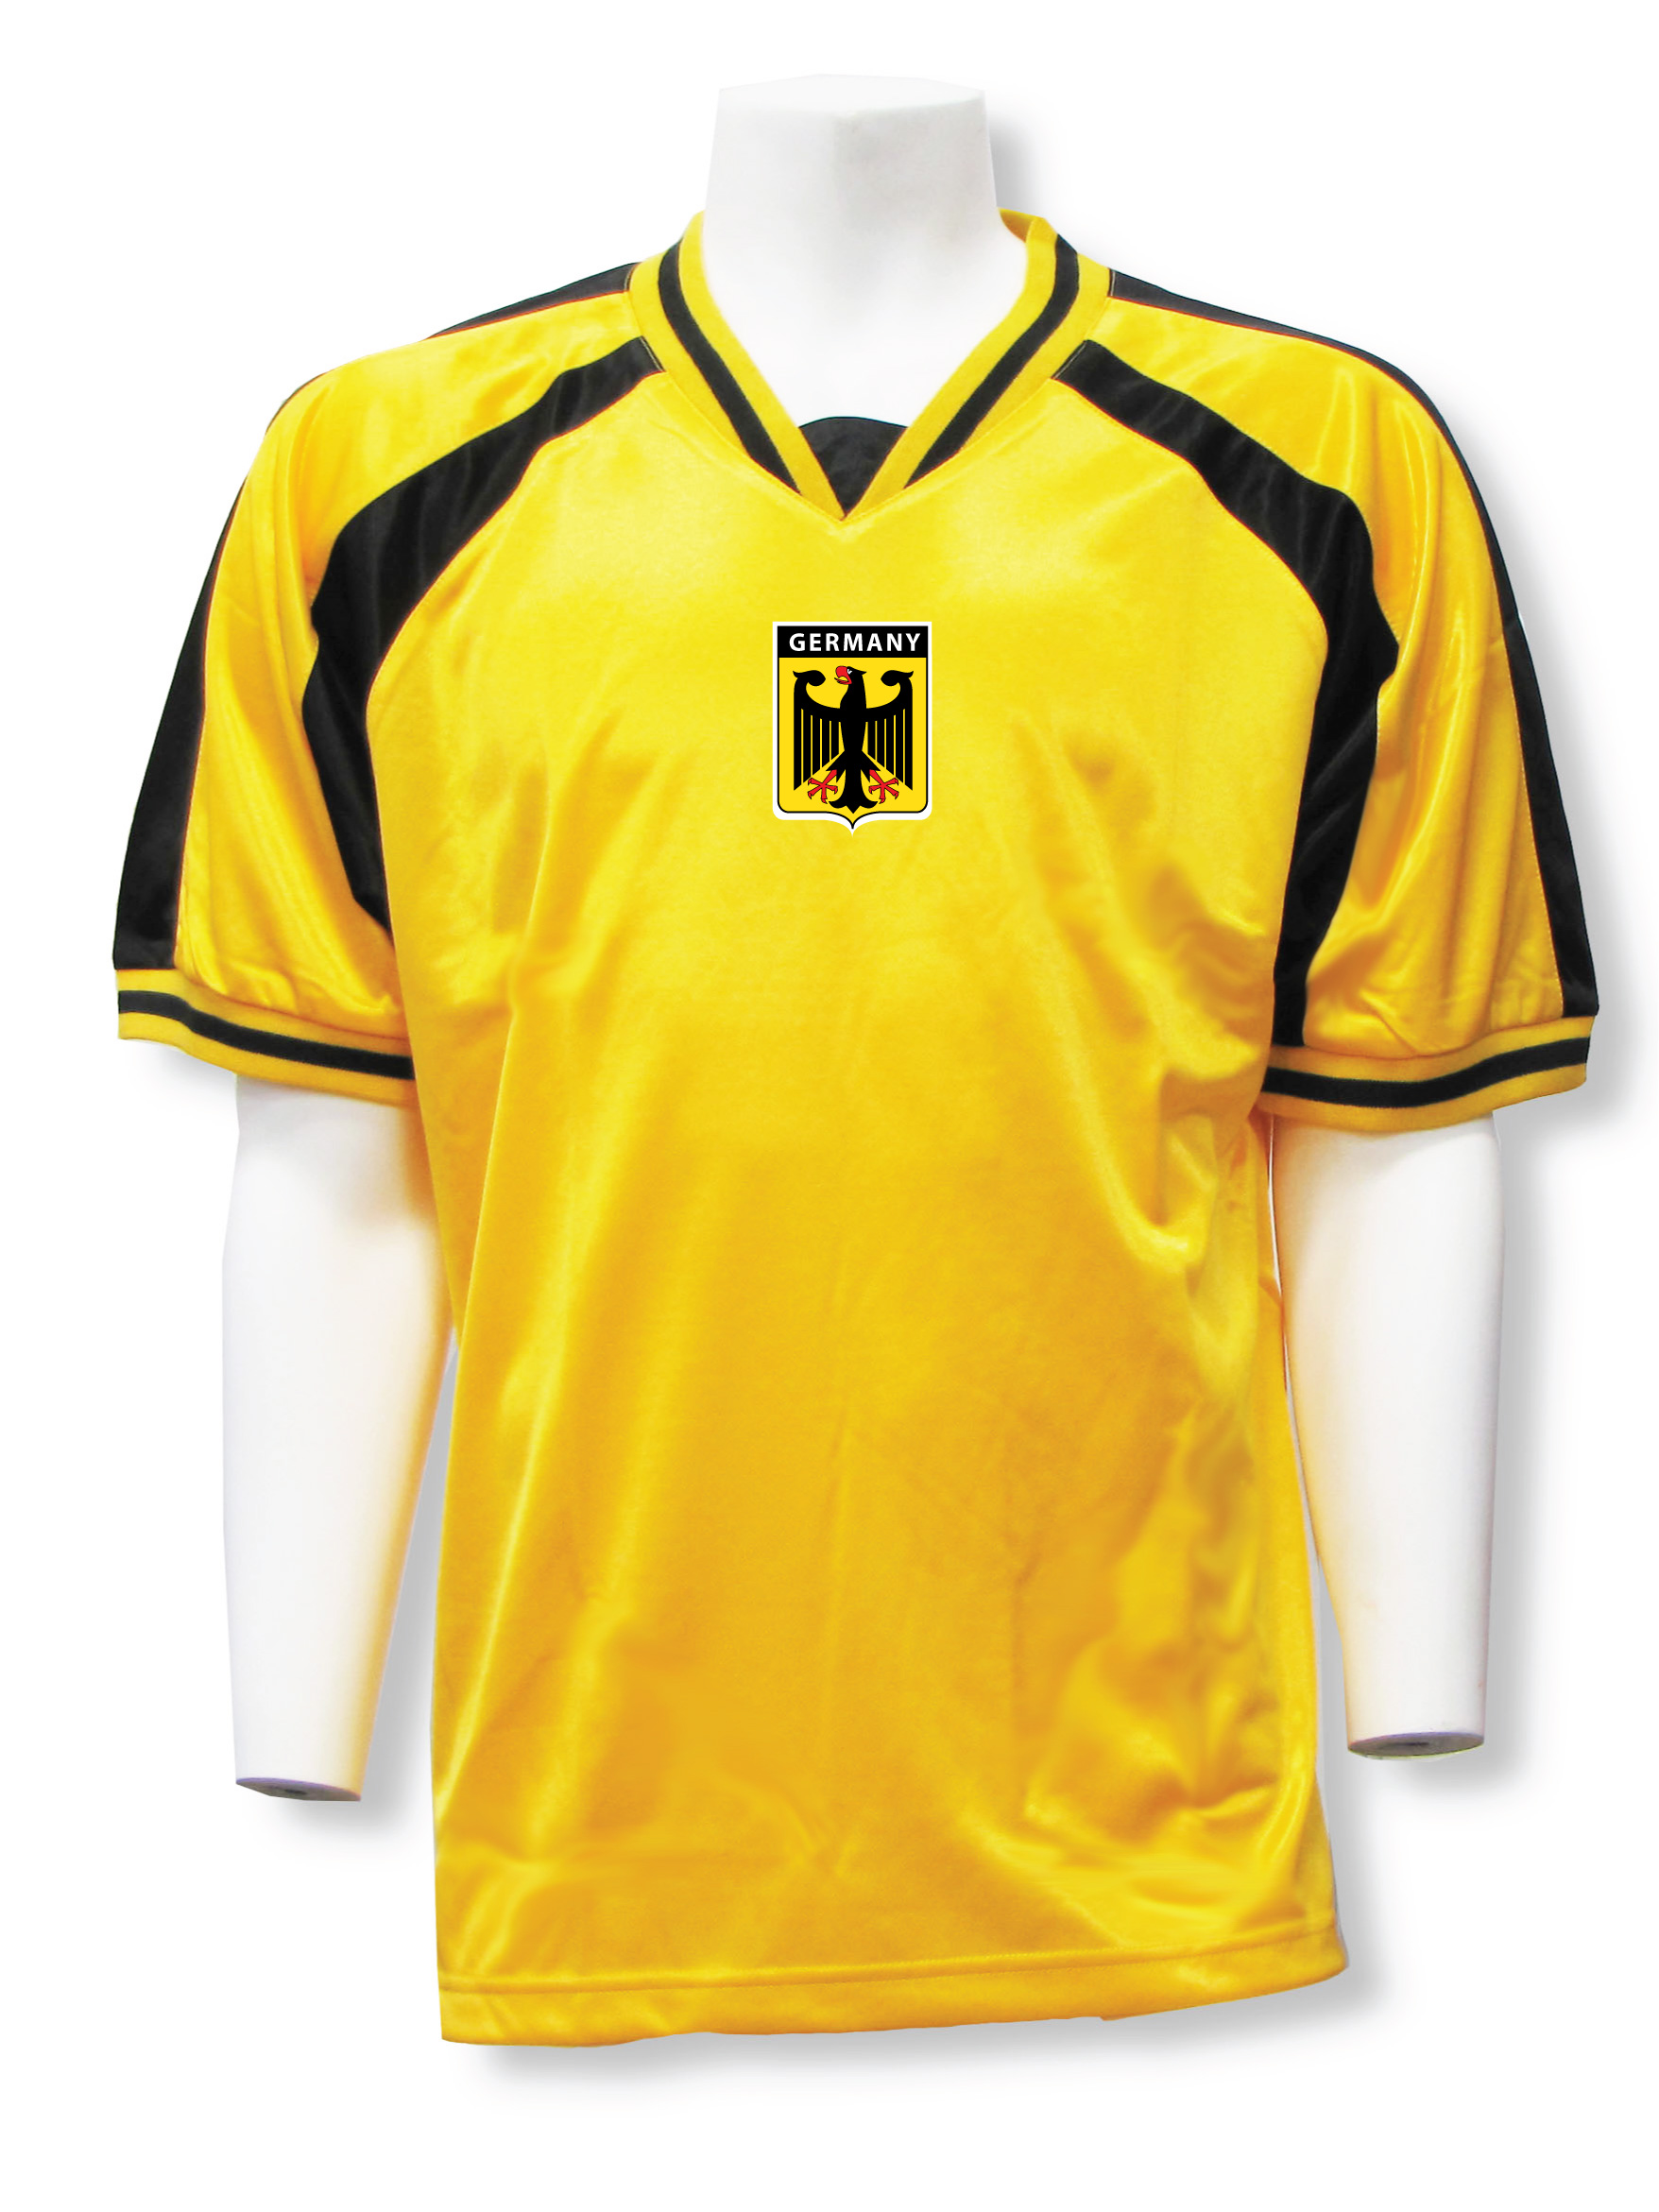 Germany soccer jersey in gold/black Spitfire